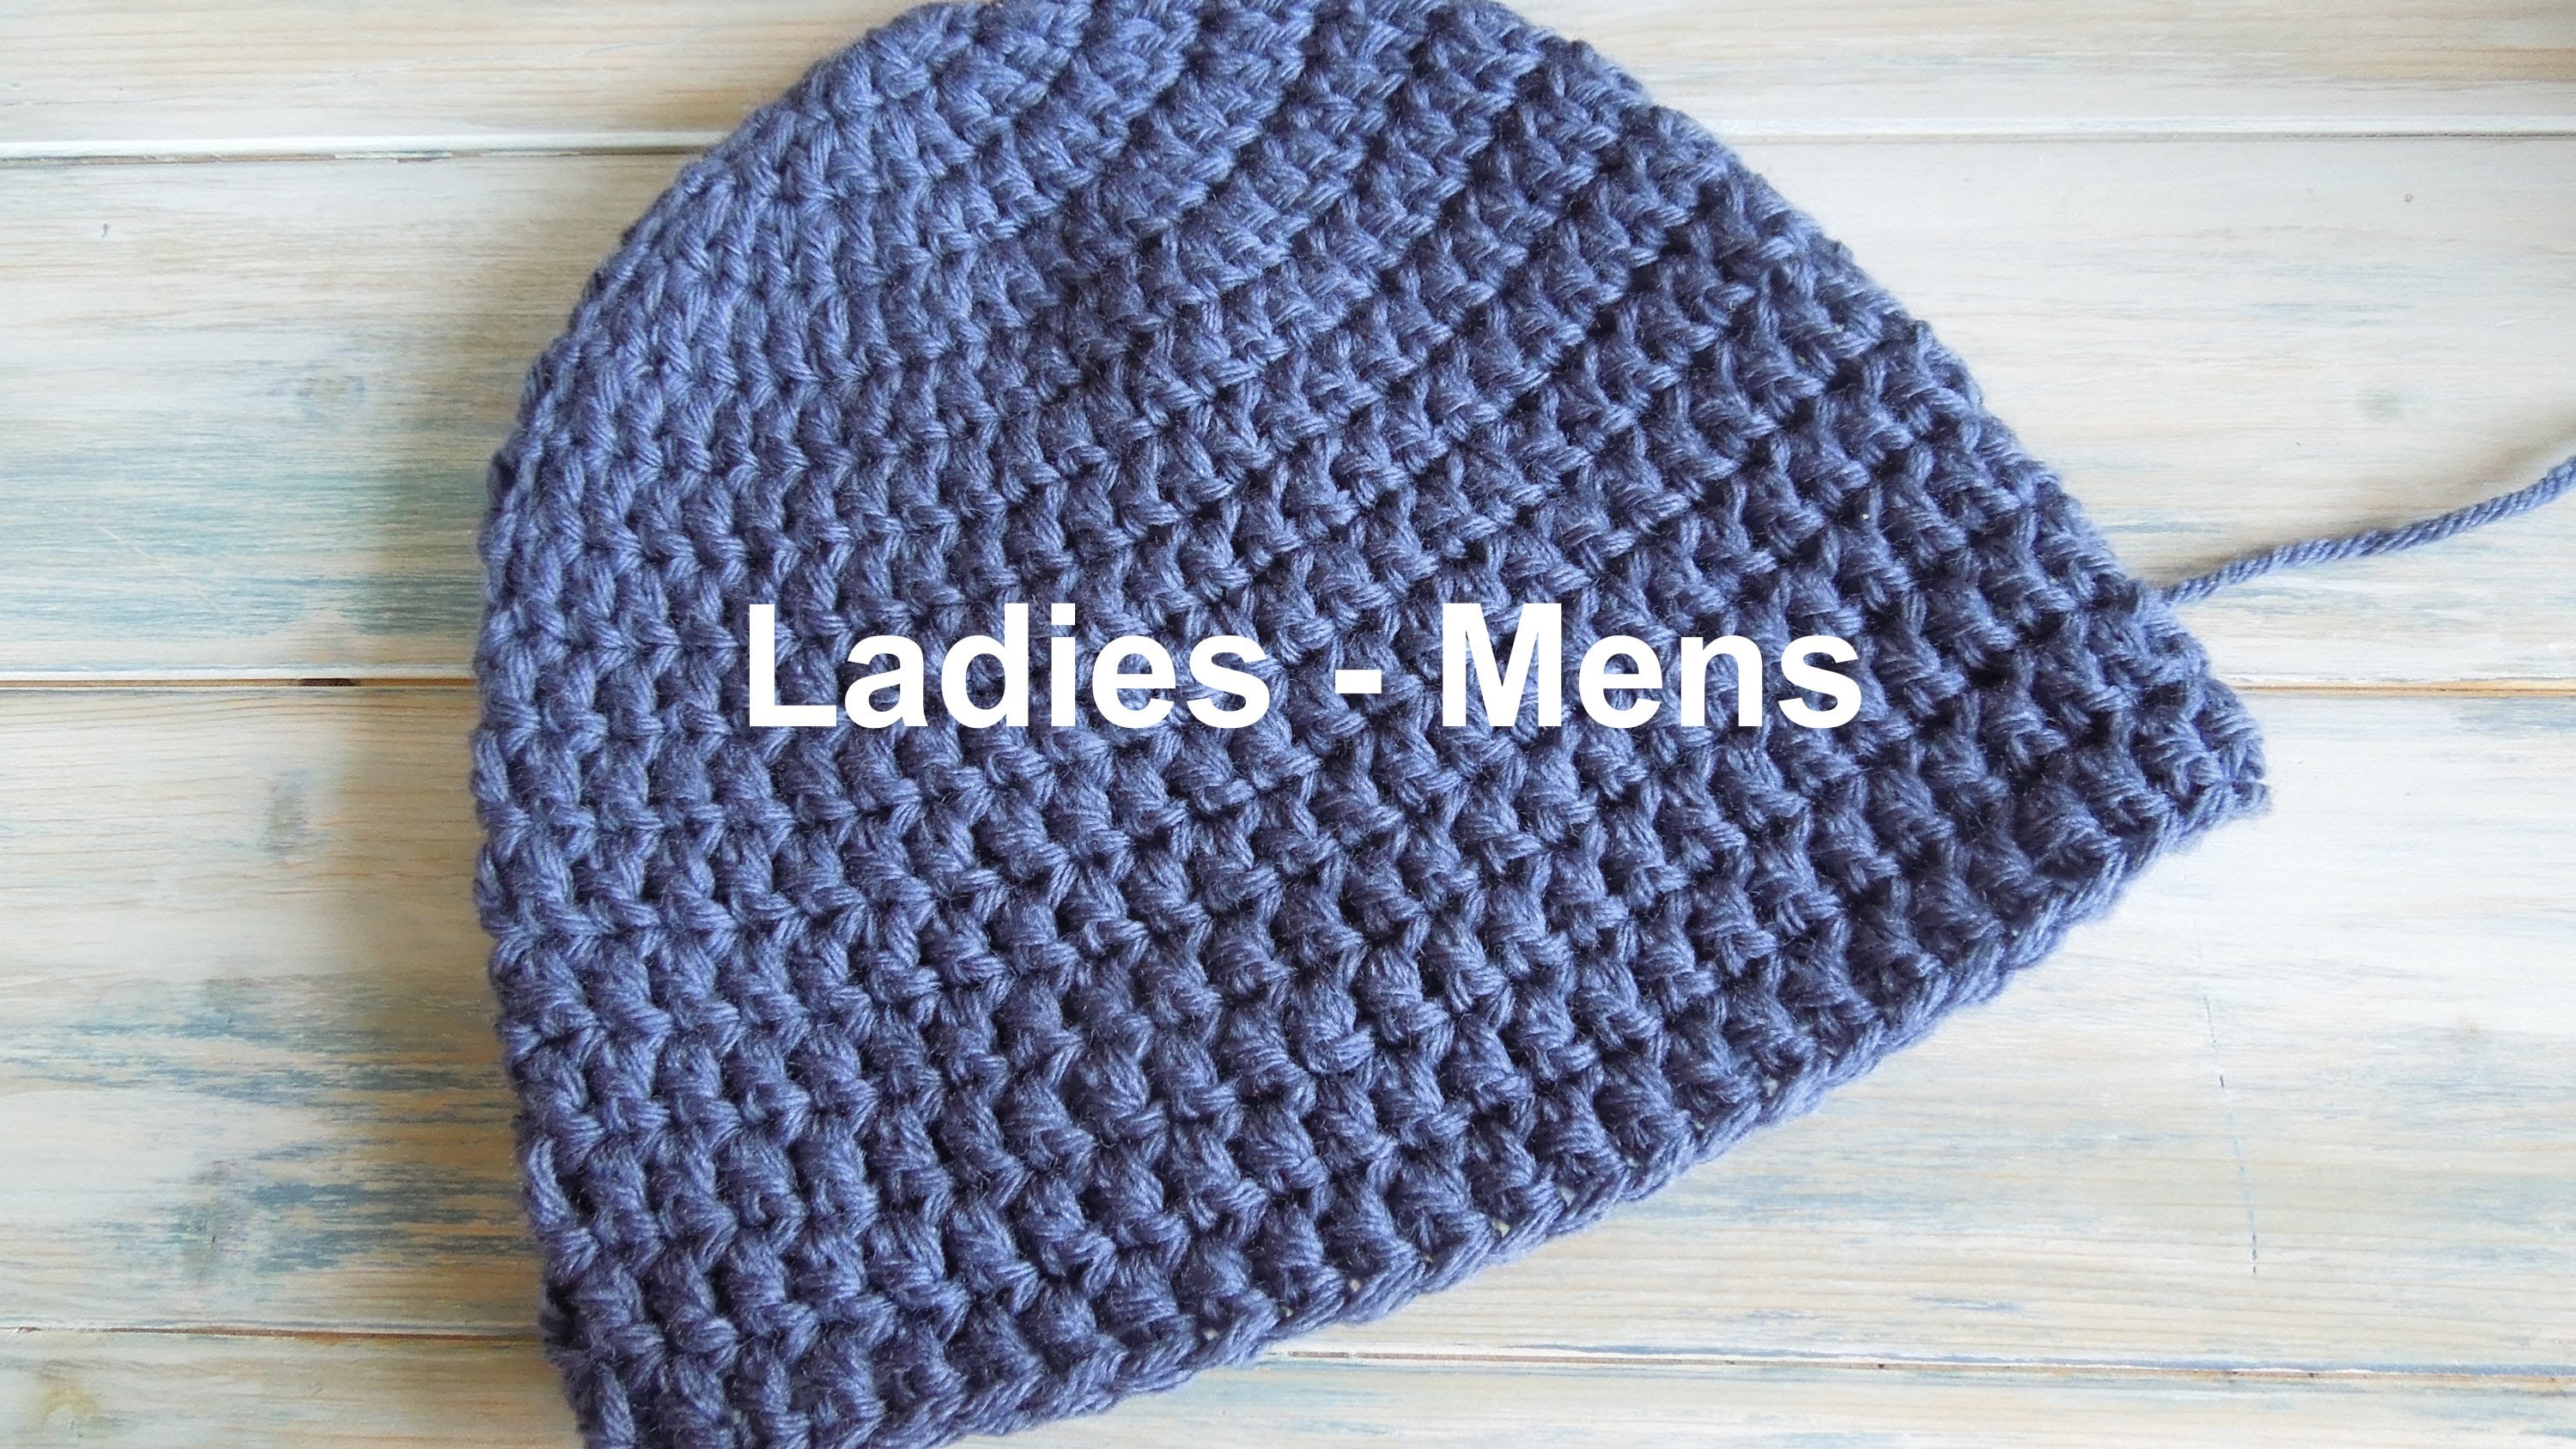 Crochet Beanie Pattern (crochet) how to - crochet a simple beanie for ladies - mens size dhsgfmk